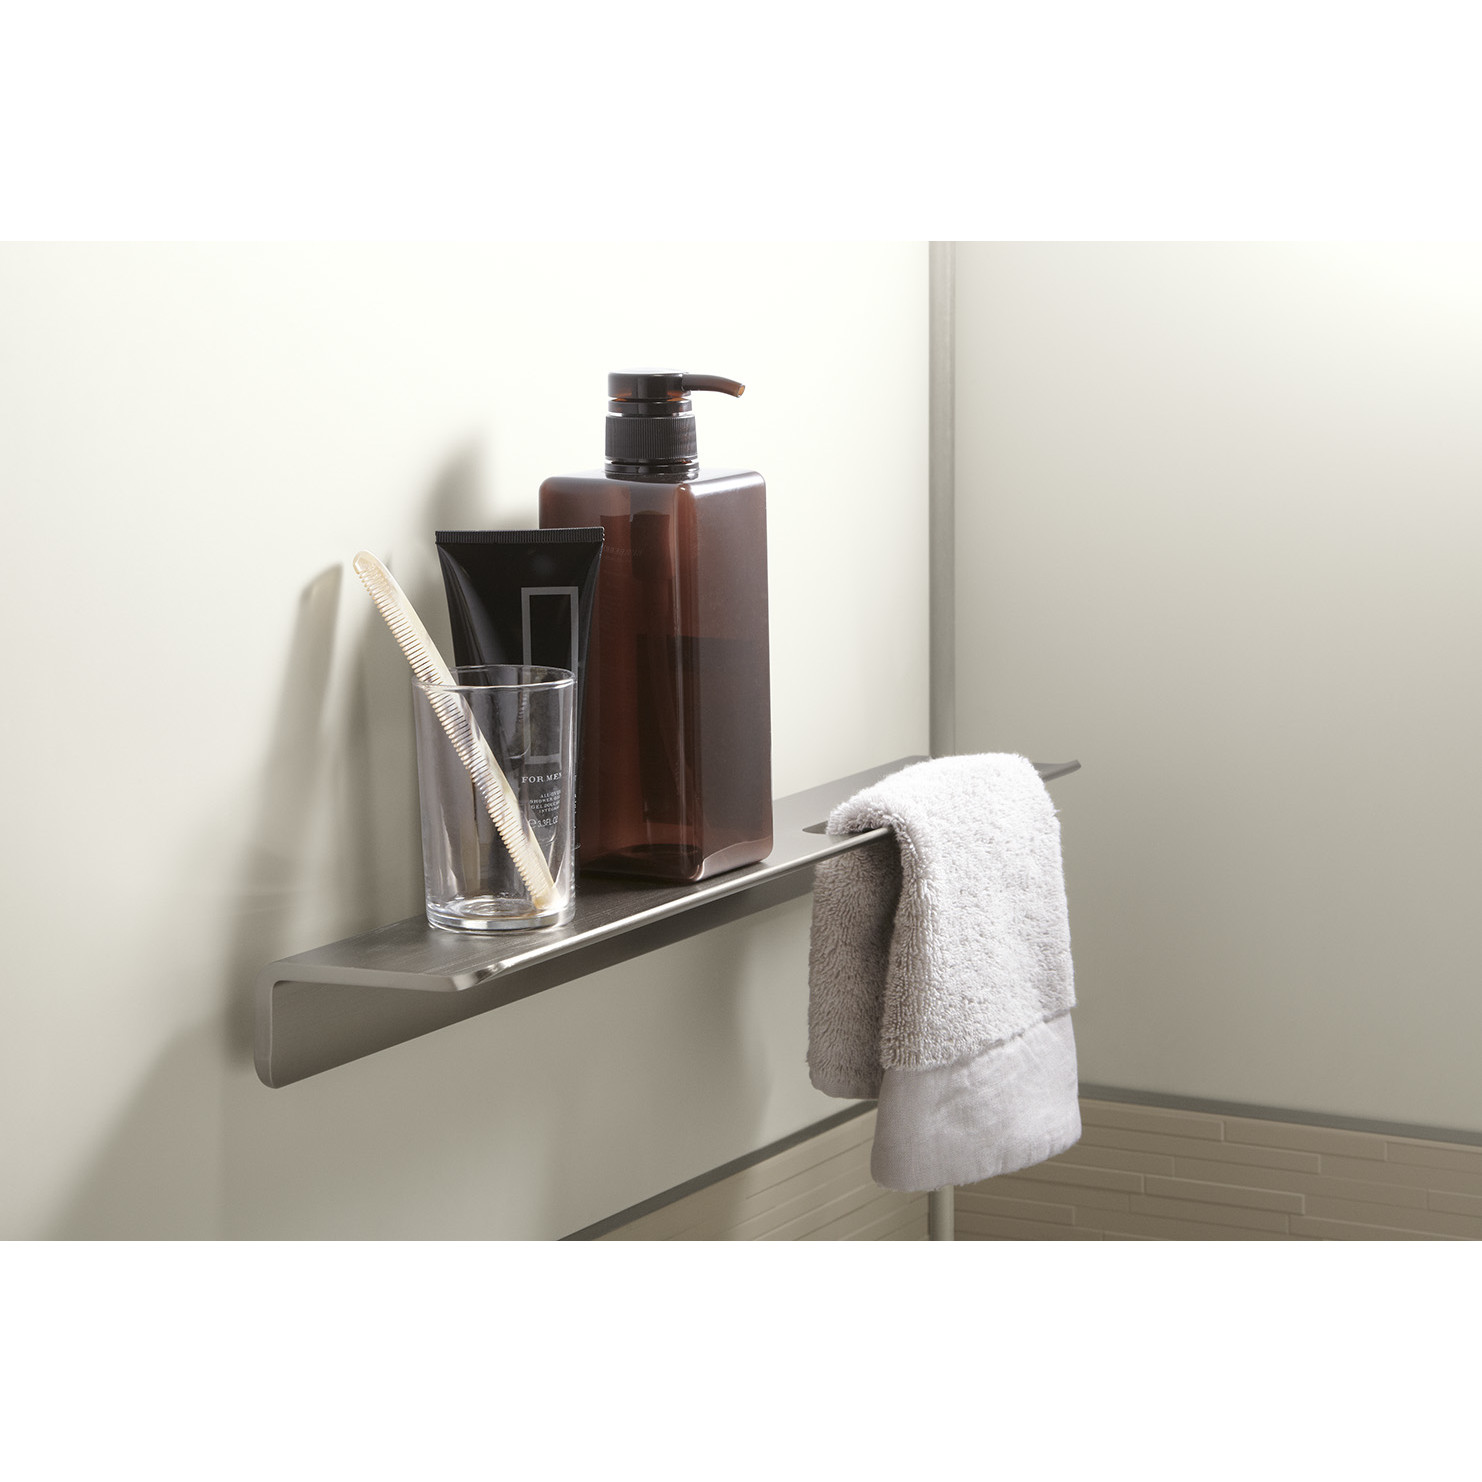 kohler choreograph floating shower shelf reviews pans folding canadian tire command wall mount shelving boards and brackets frame bookshelf diy decor tures best ergonomic office